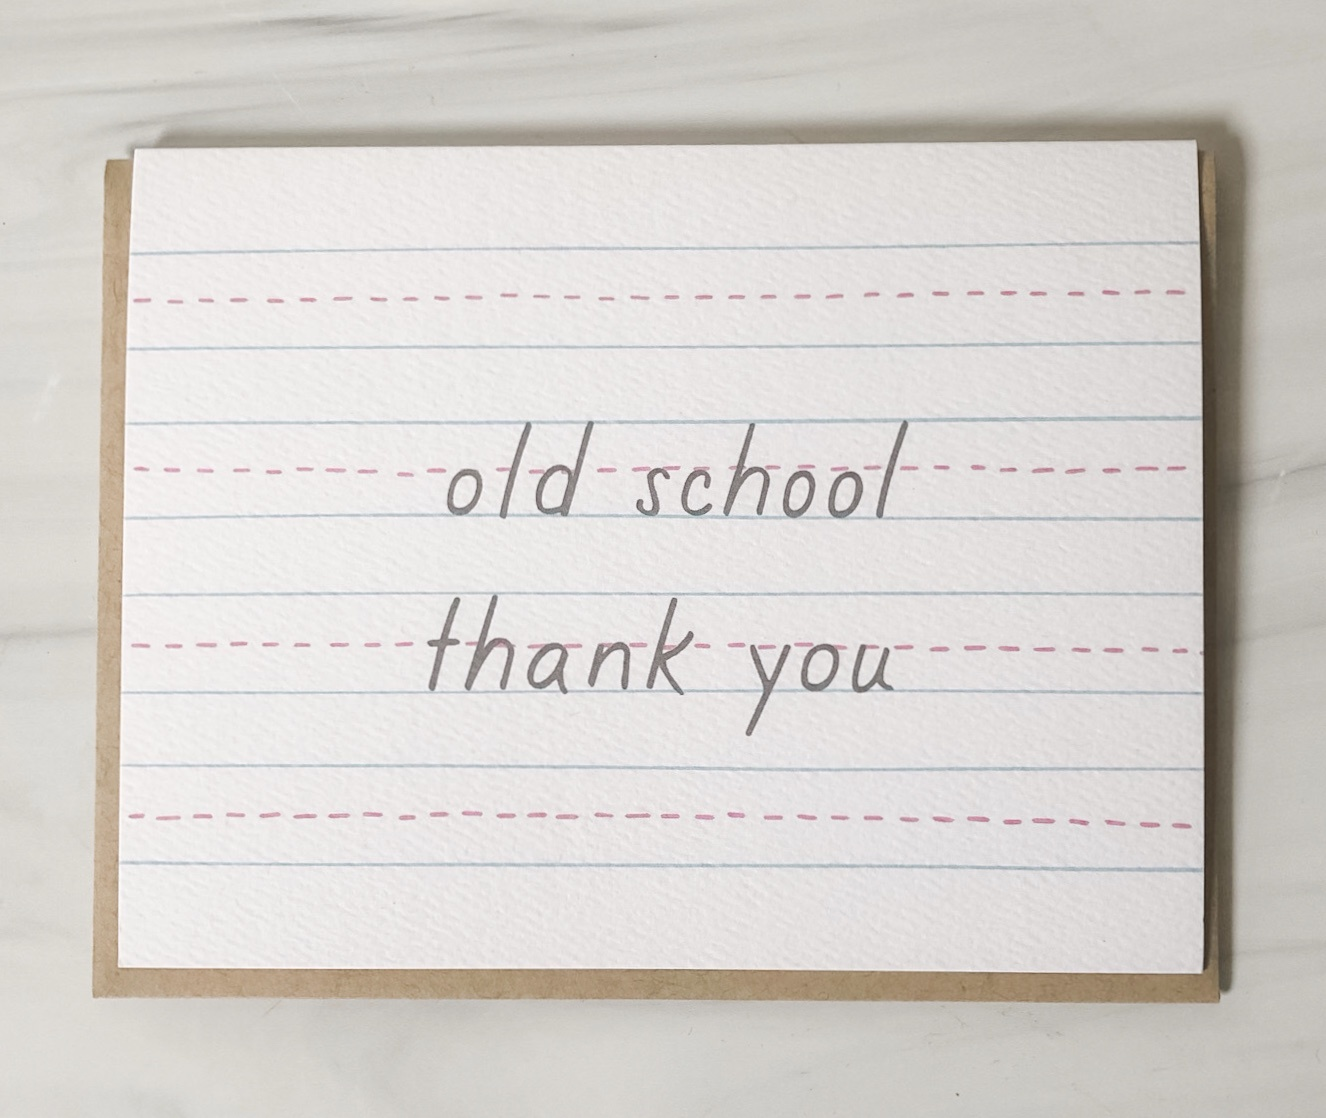 Old School Thank You, blank greeting card